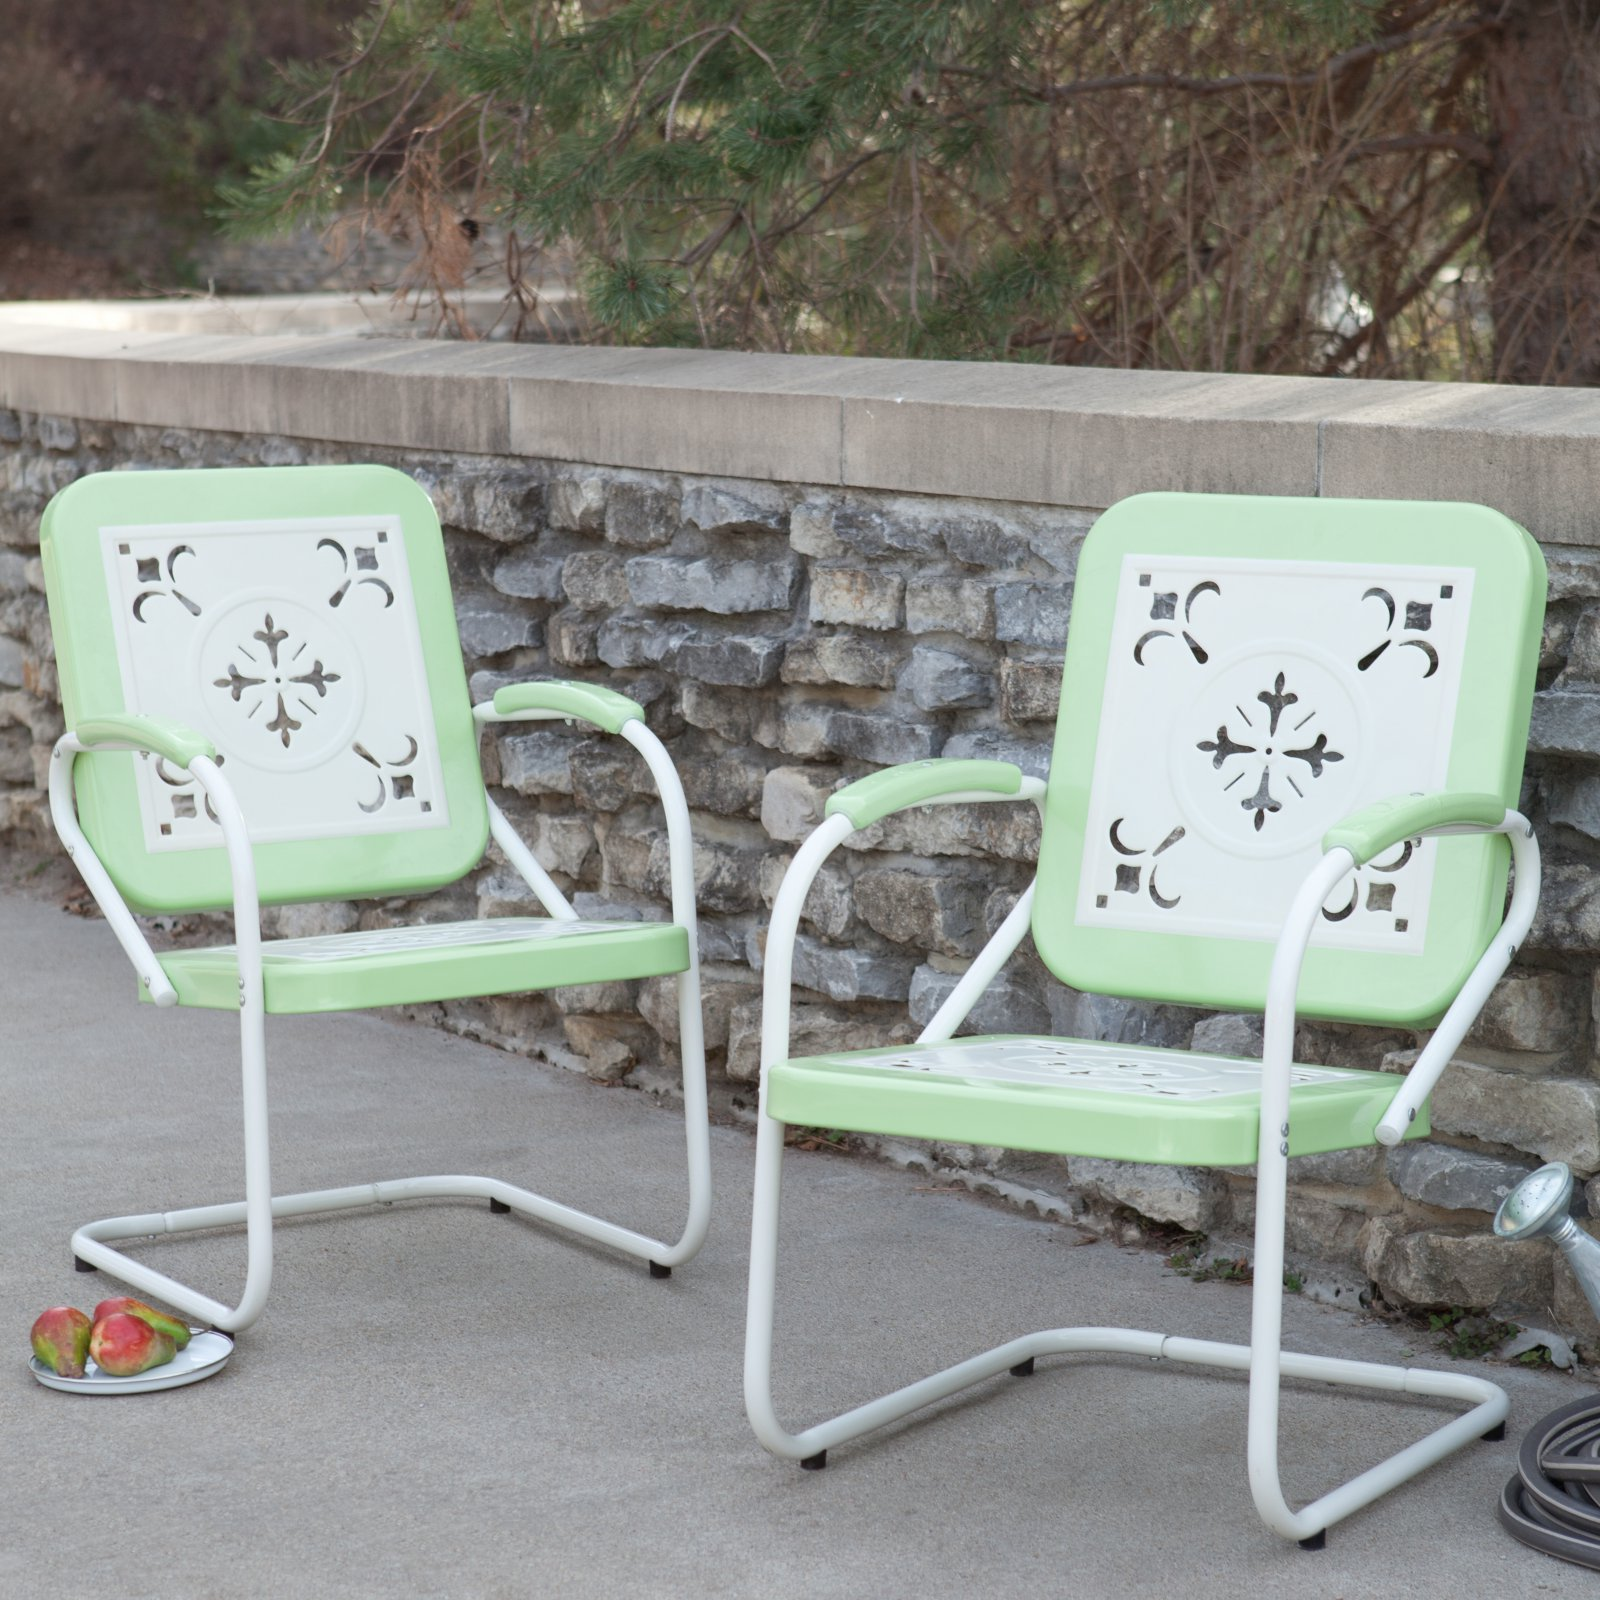 Coral Coast Paradise Cove Retro Metal Arm Chairs - Set of 2